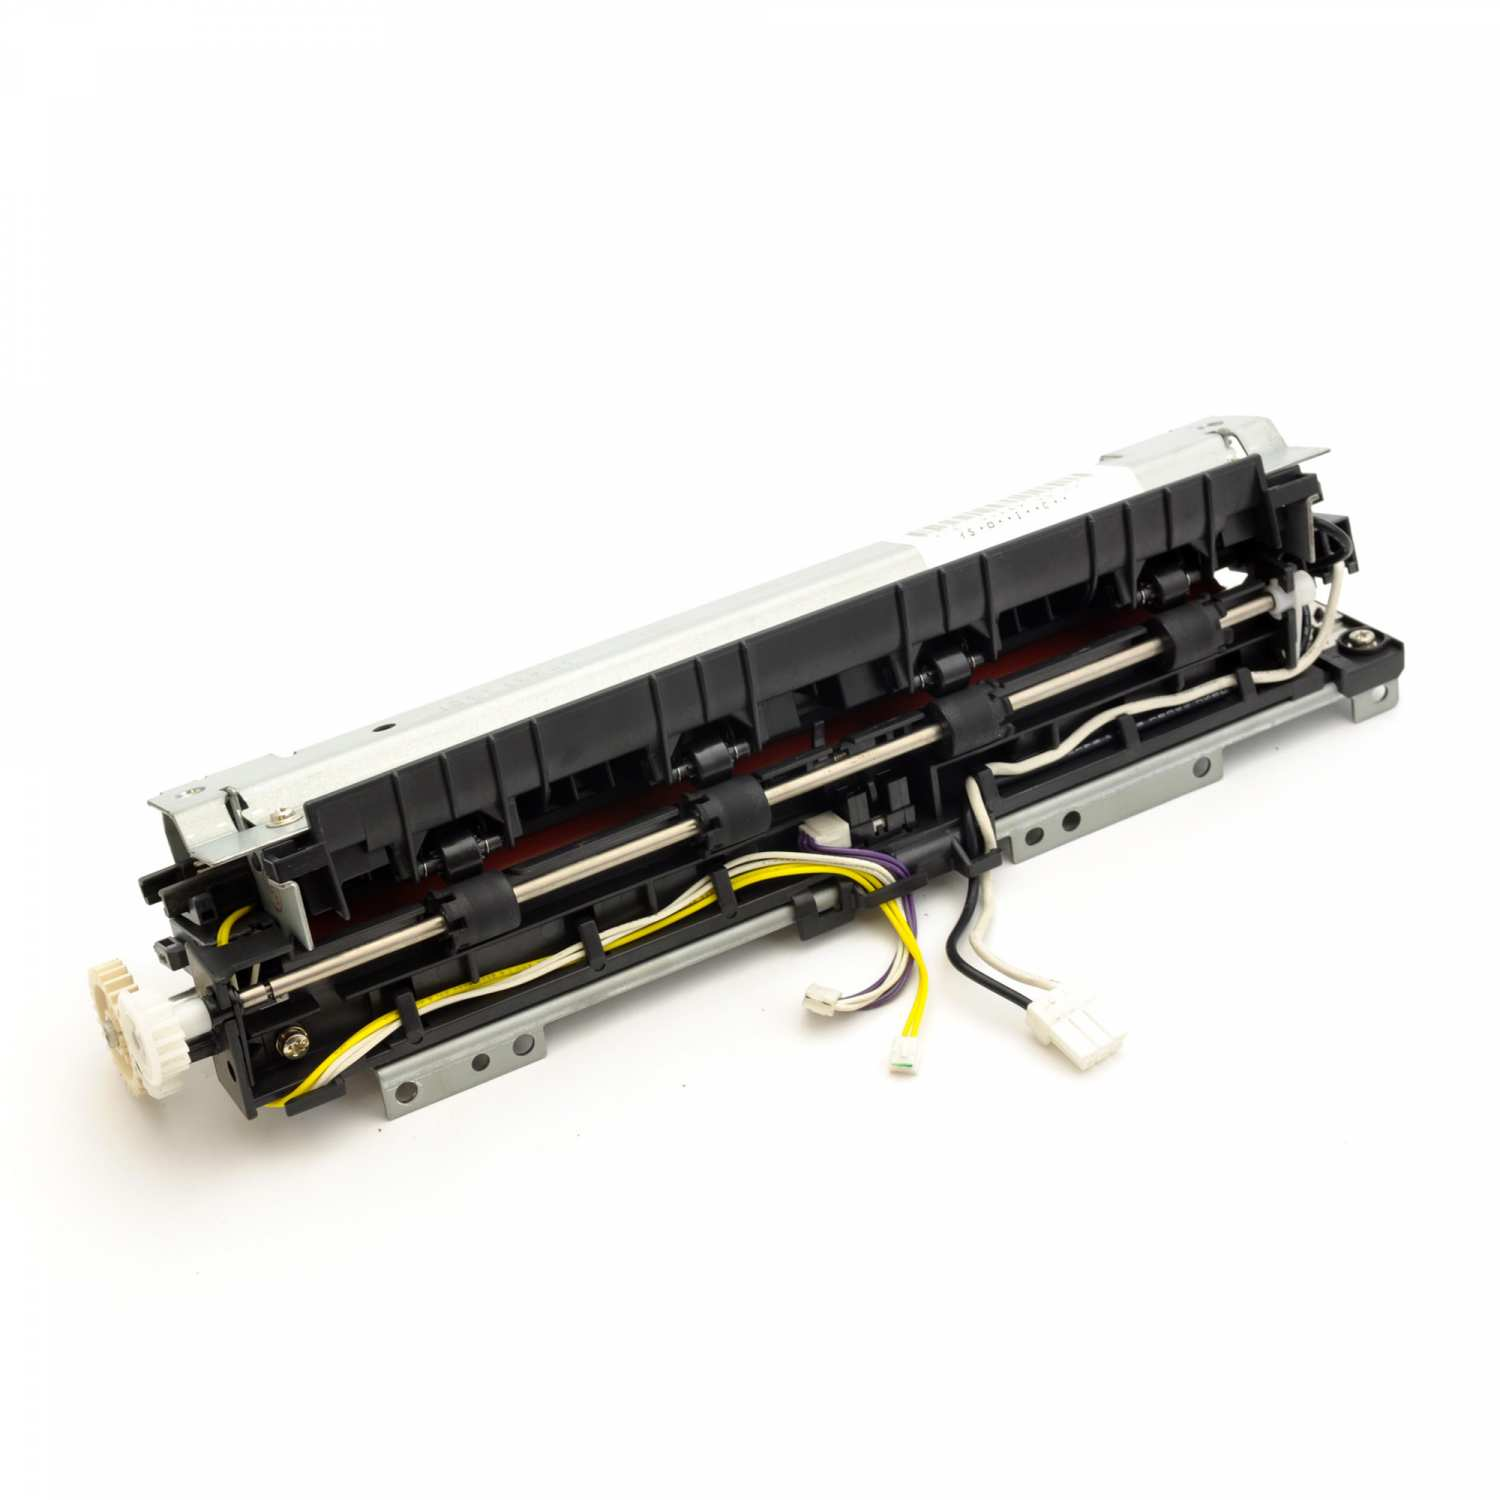 RG5-5559-000 Fuser Assembly (110V) Purchase for HP LaserJet 2200